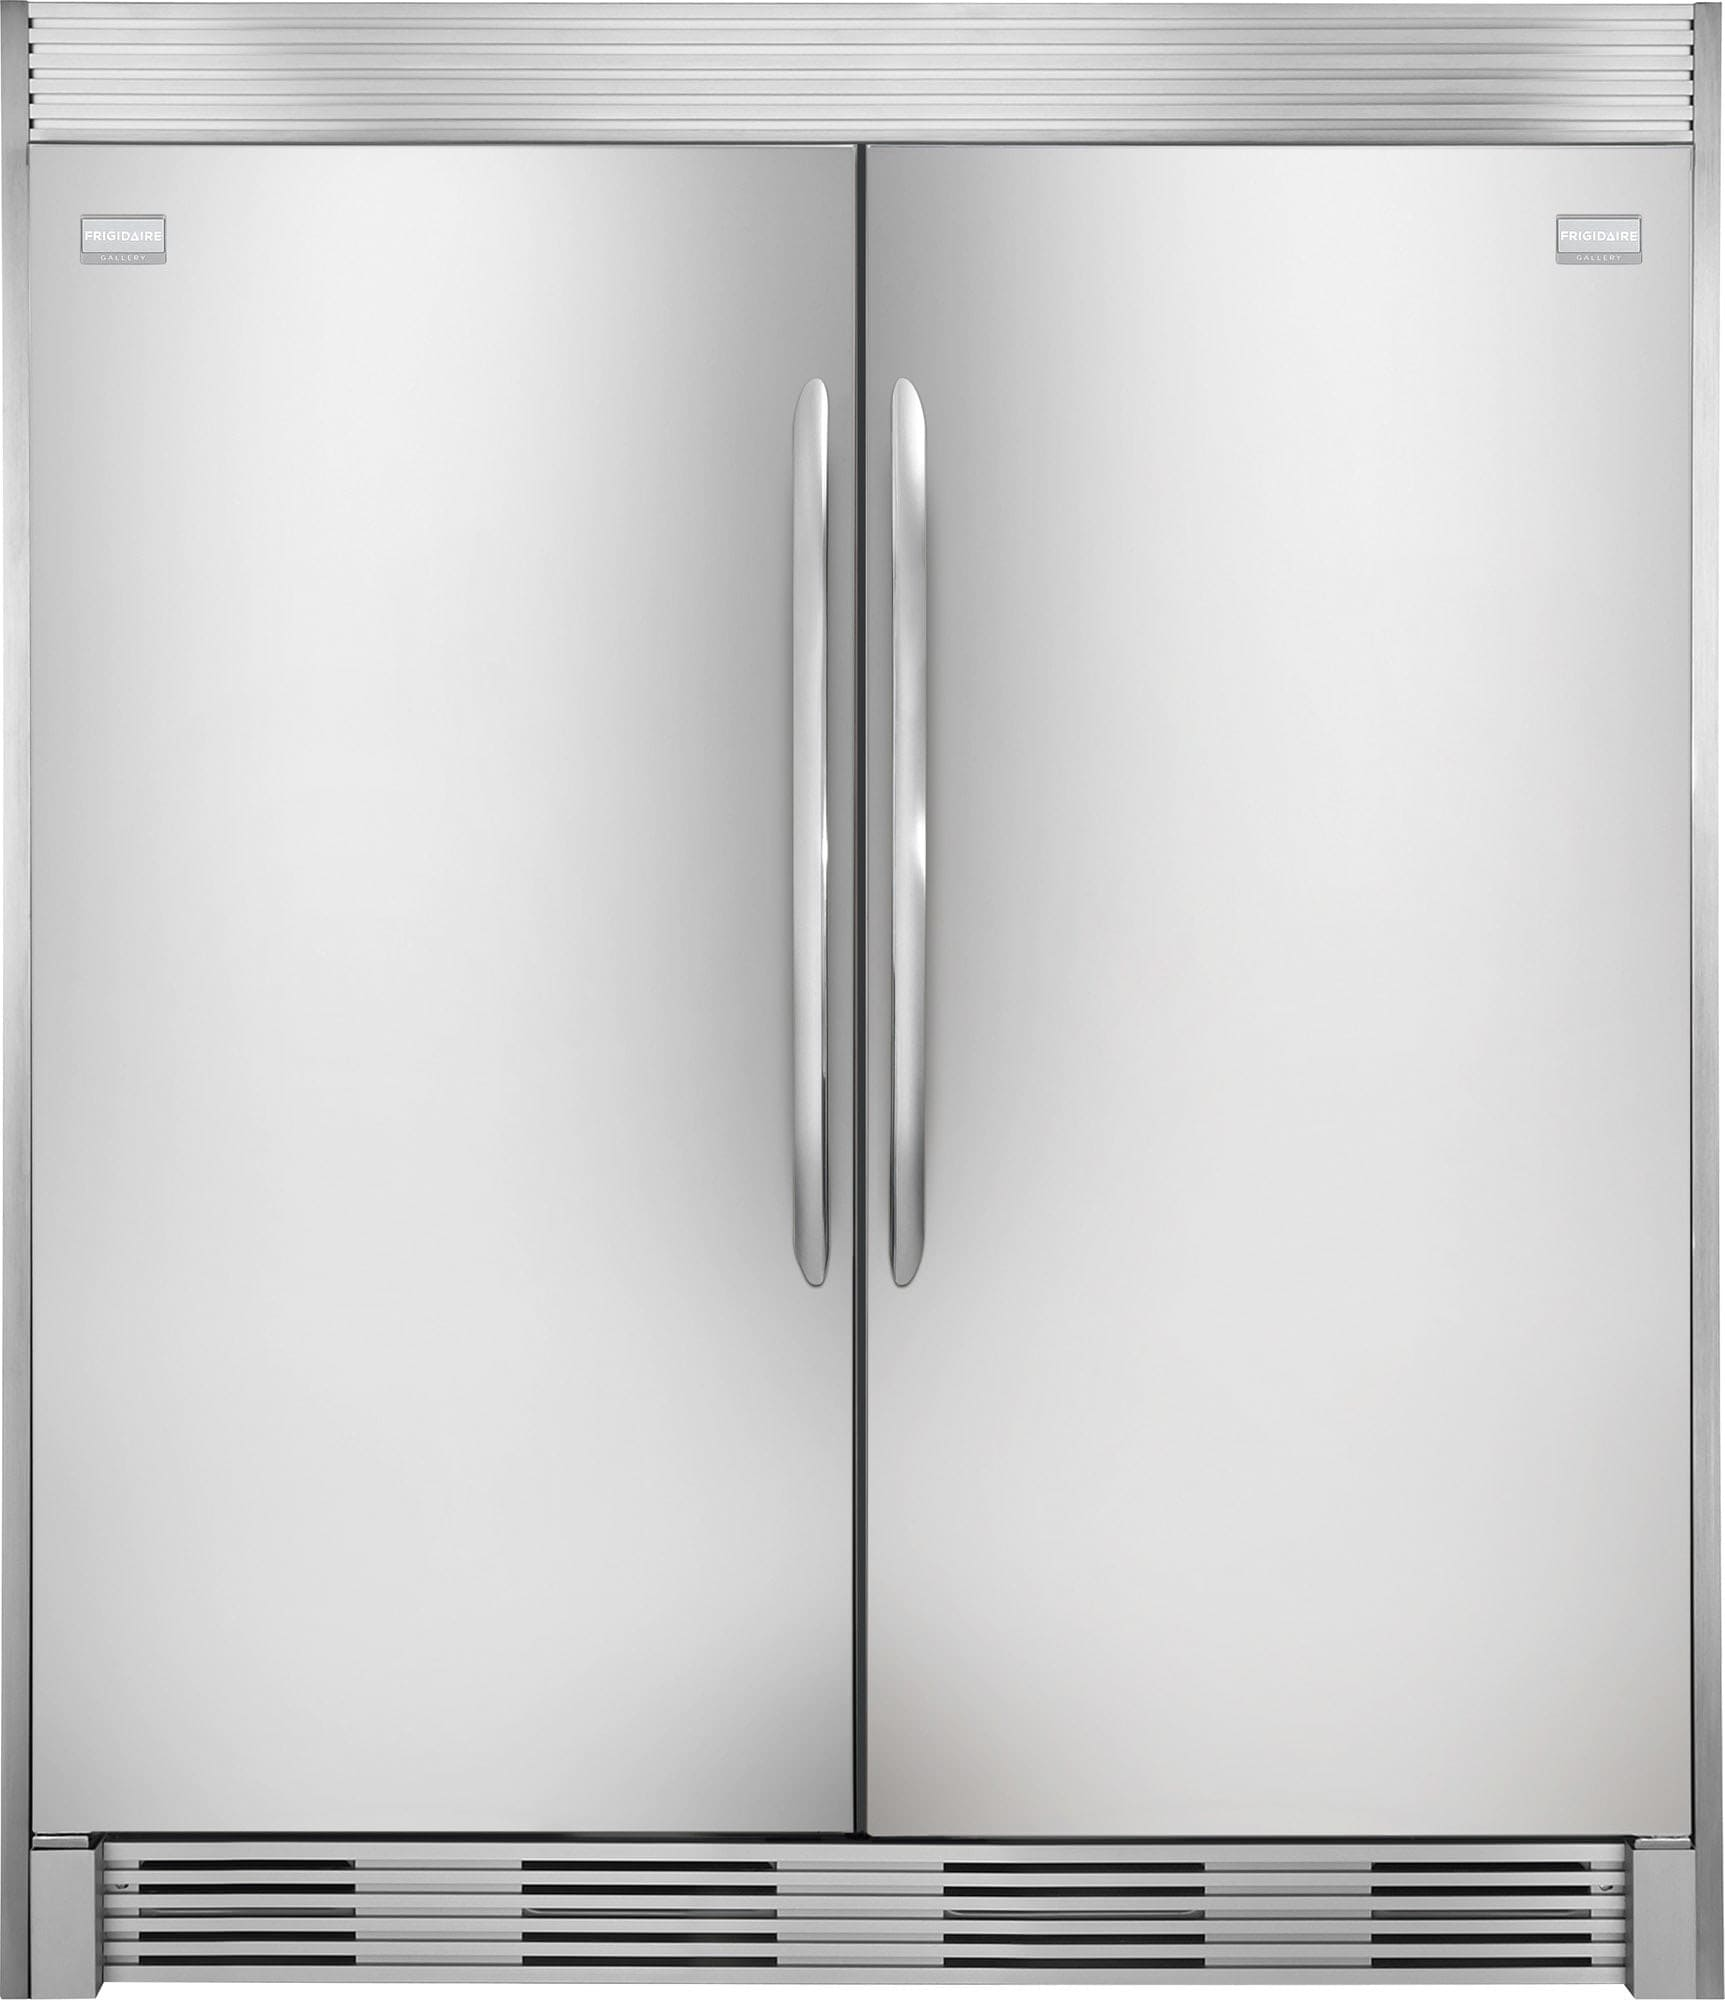 Frigidaire FRREFR1 Side-by-Side Column Refrigerator & Freezer Set with 32  Inch Refrigerator and 32 Inch Freezer in Stainless Steel